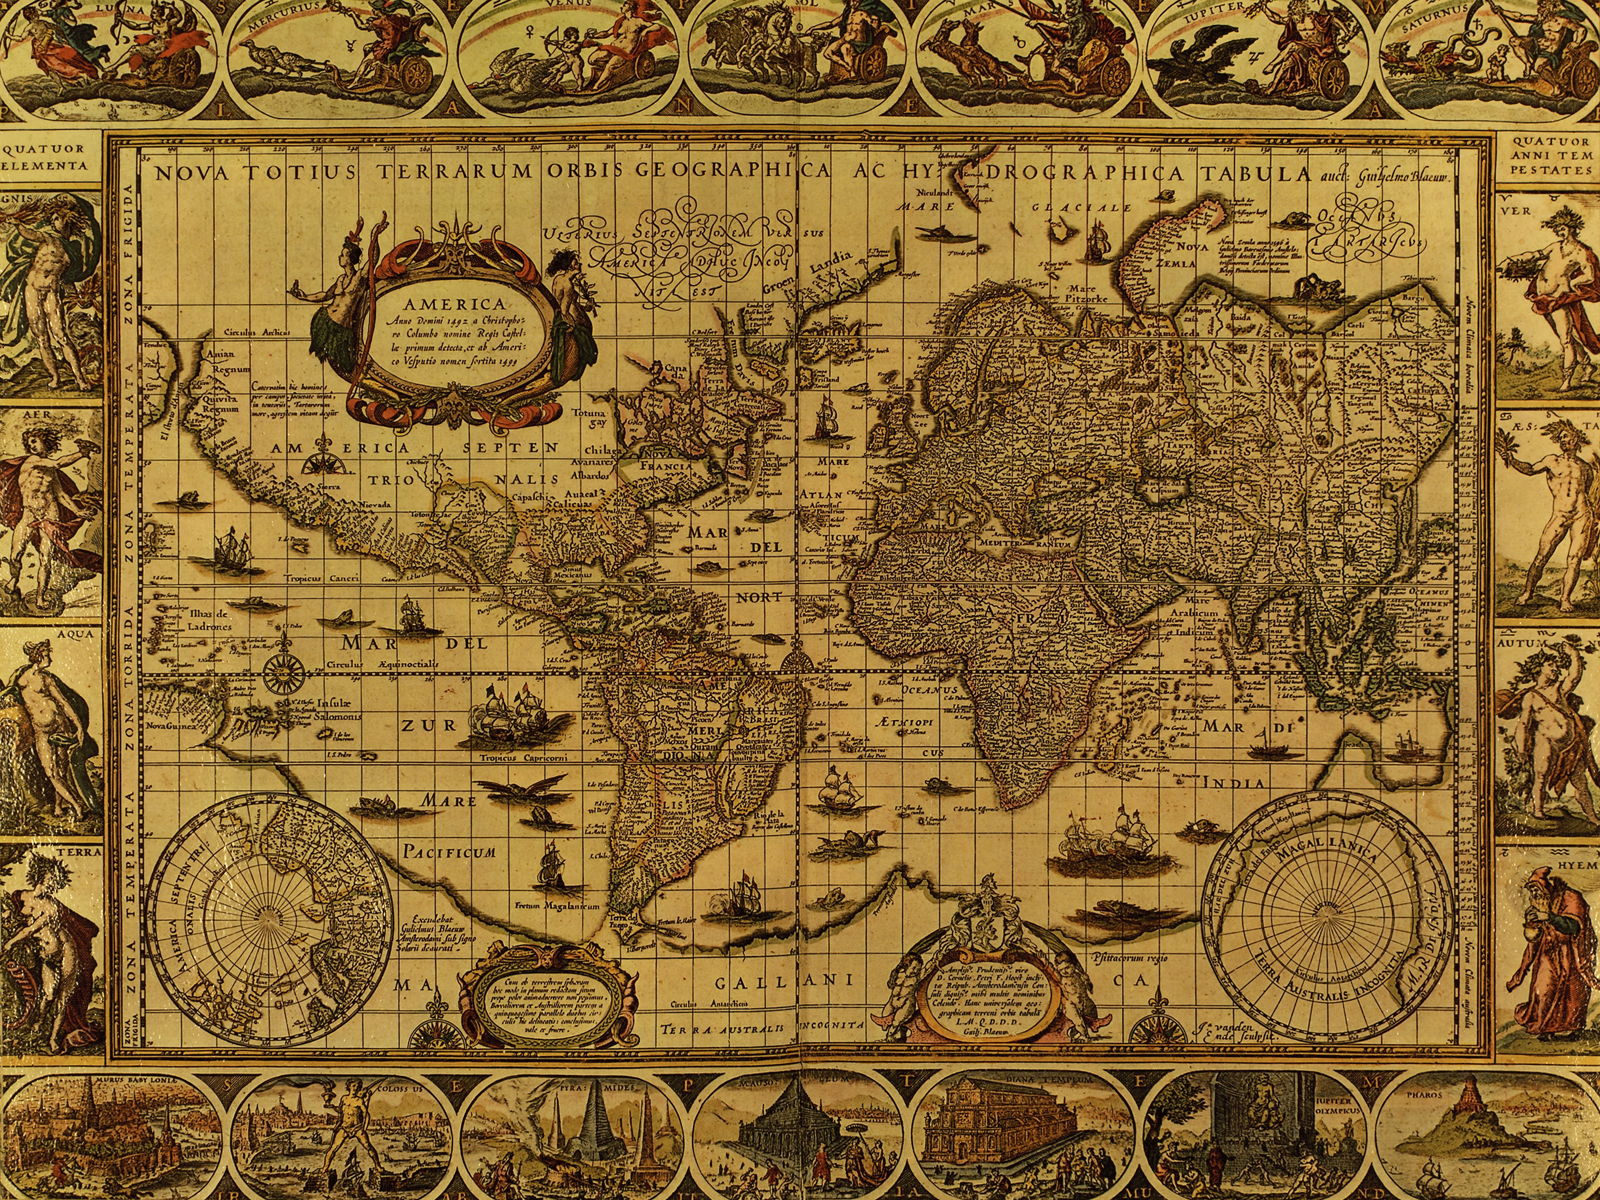 Old world map historic map antique style world map vintage map home antique map wallpaper antique map wallpaper 1600x1200 gumiabroncs Gallery